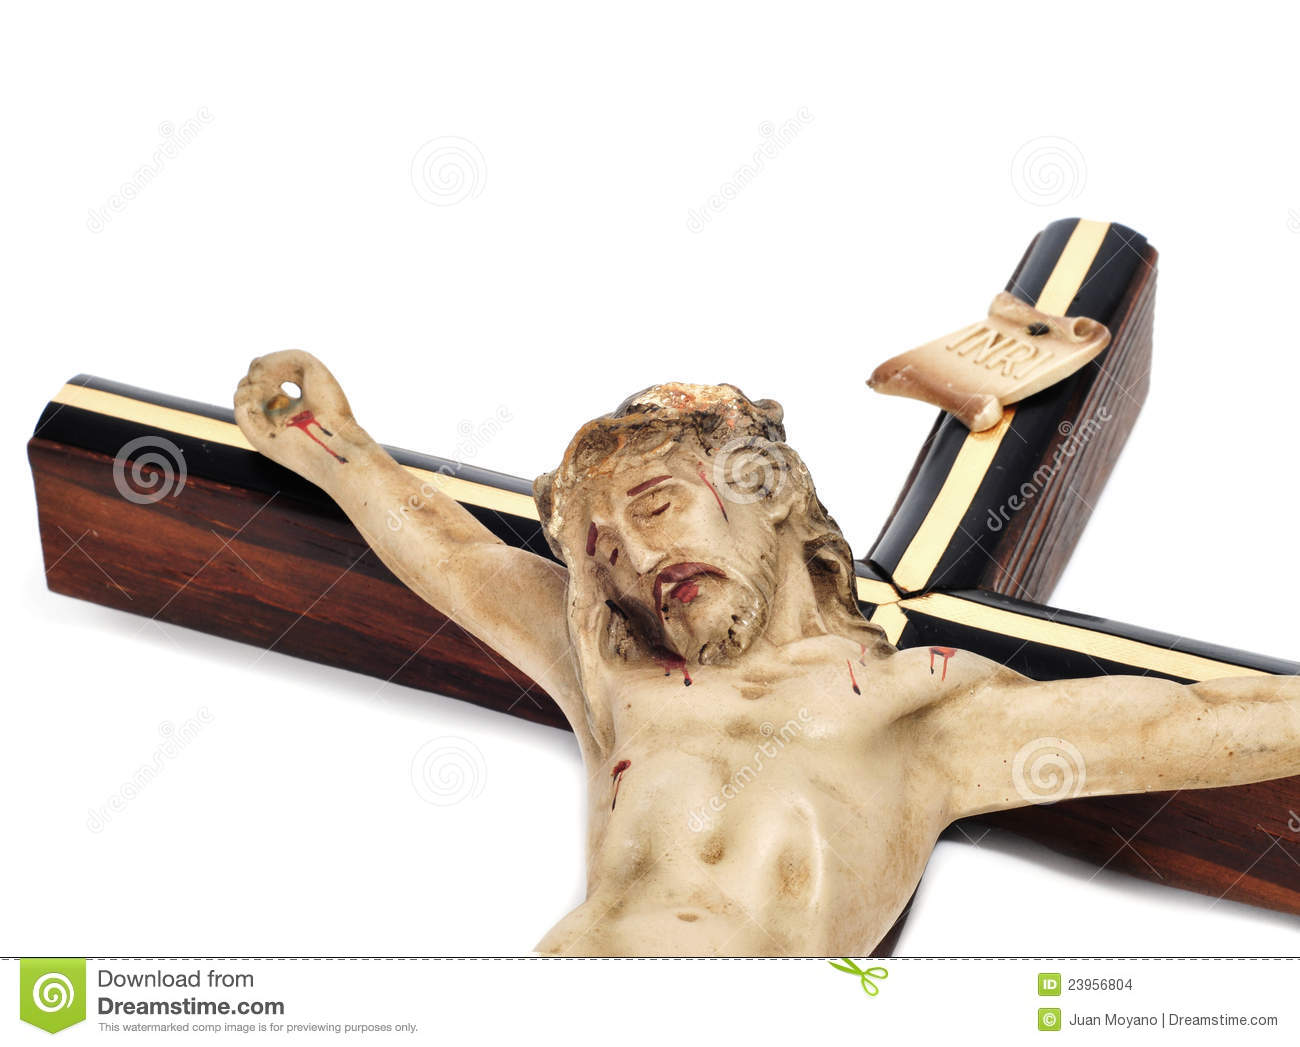 Jesus Christ in the holy cross